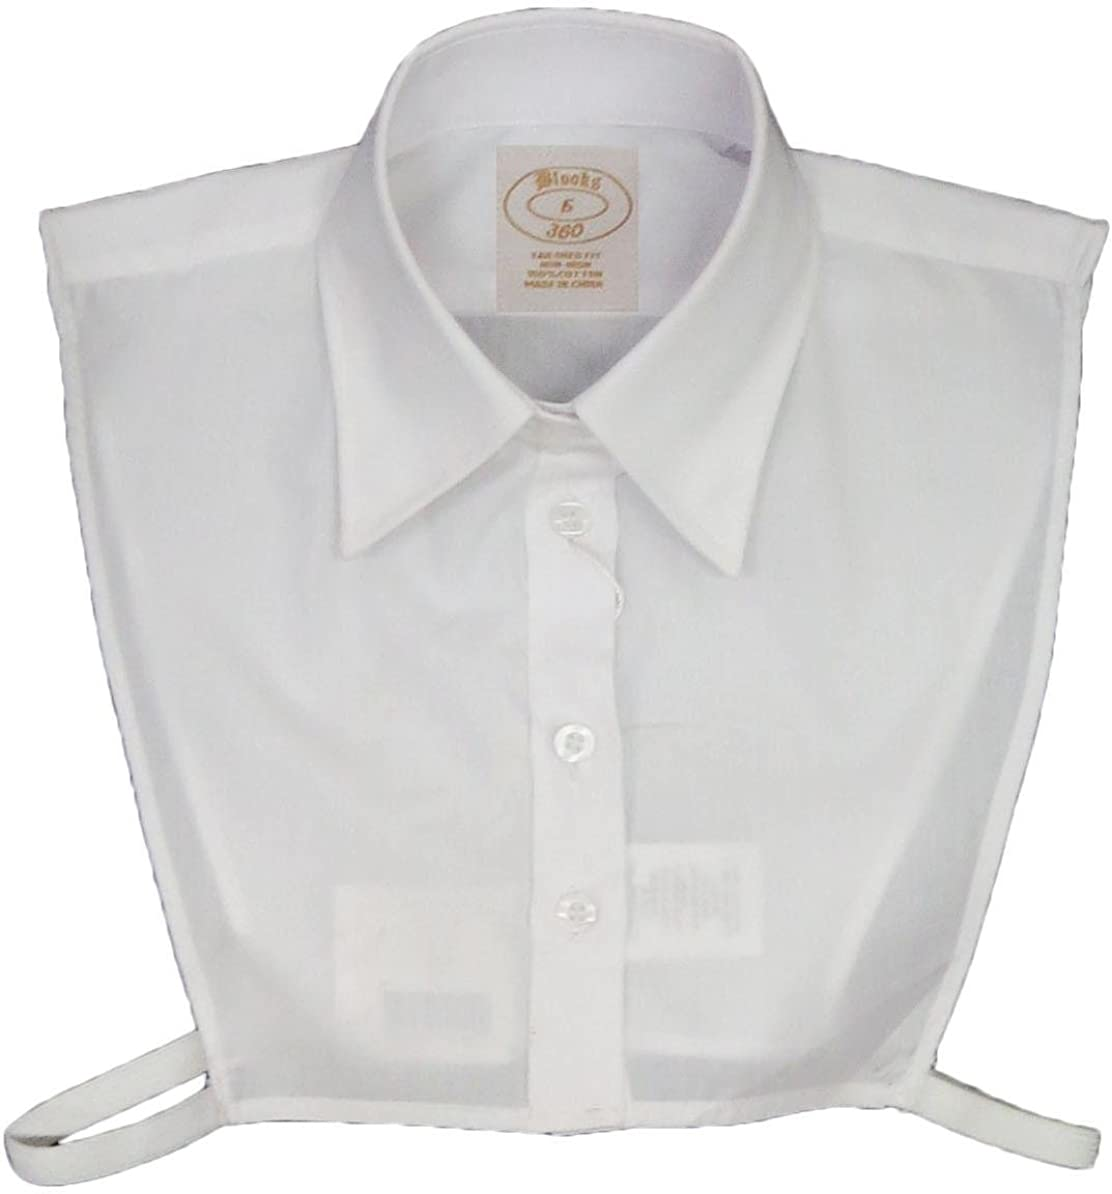 Half Shirt Blooks Girls Point Collar Pinpoint Oxford Dickey